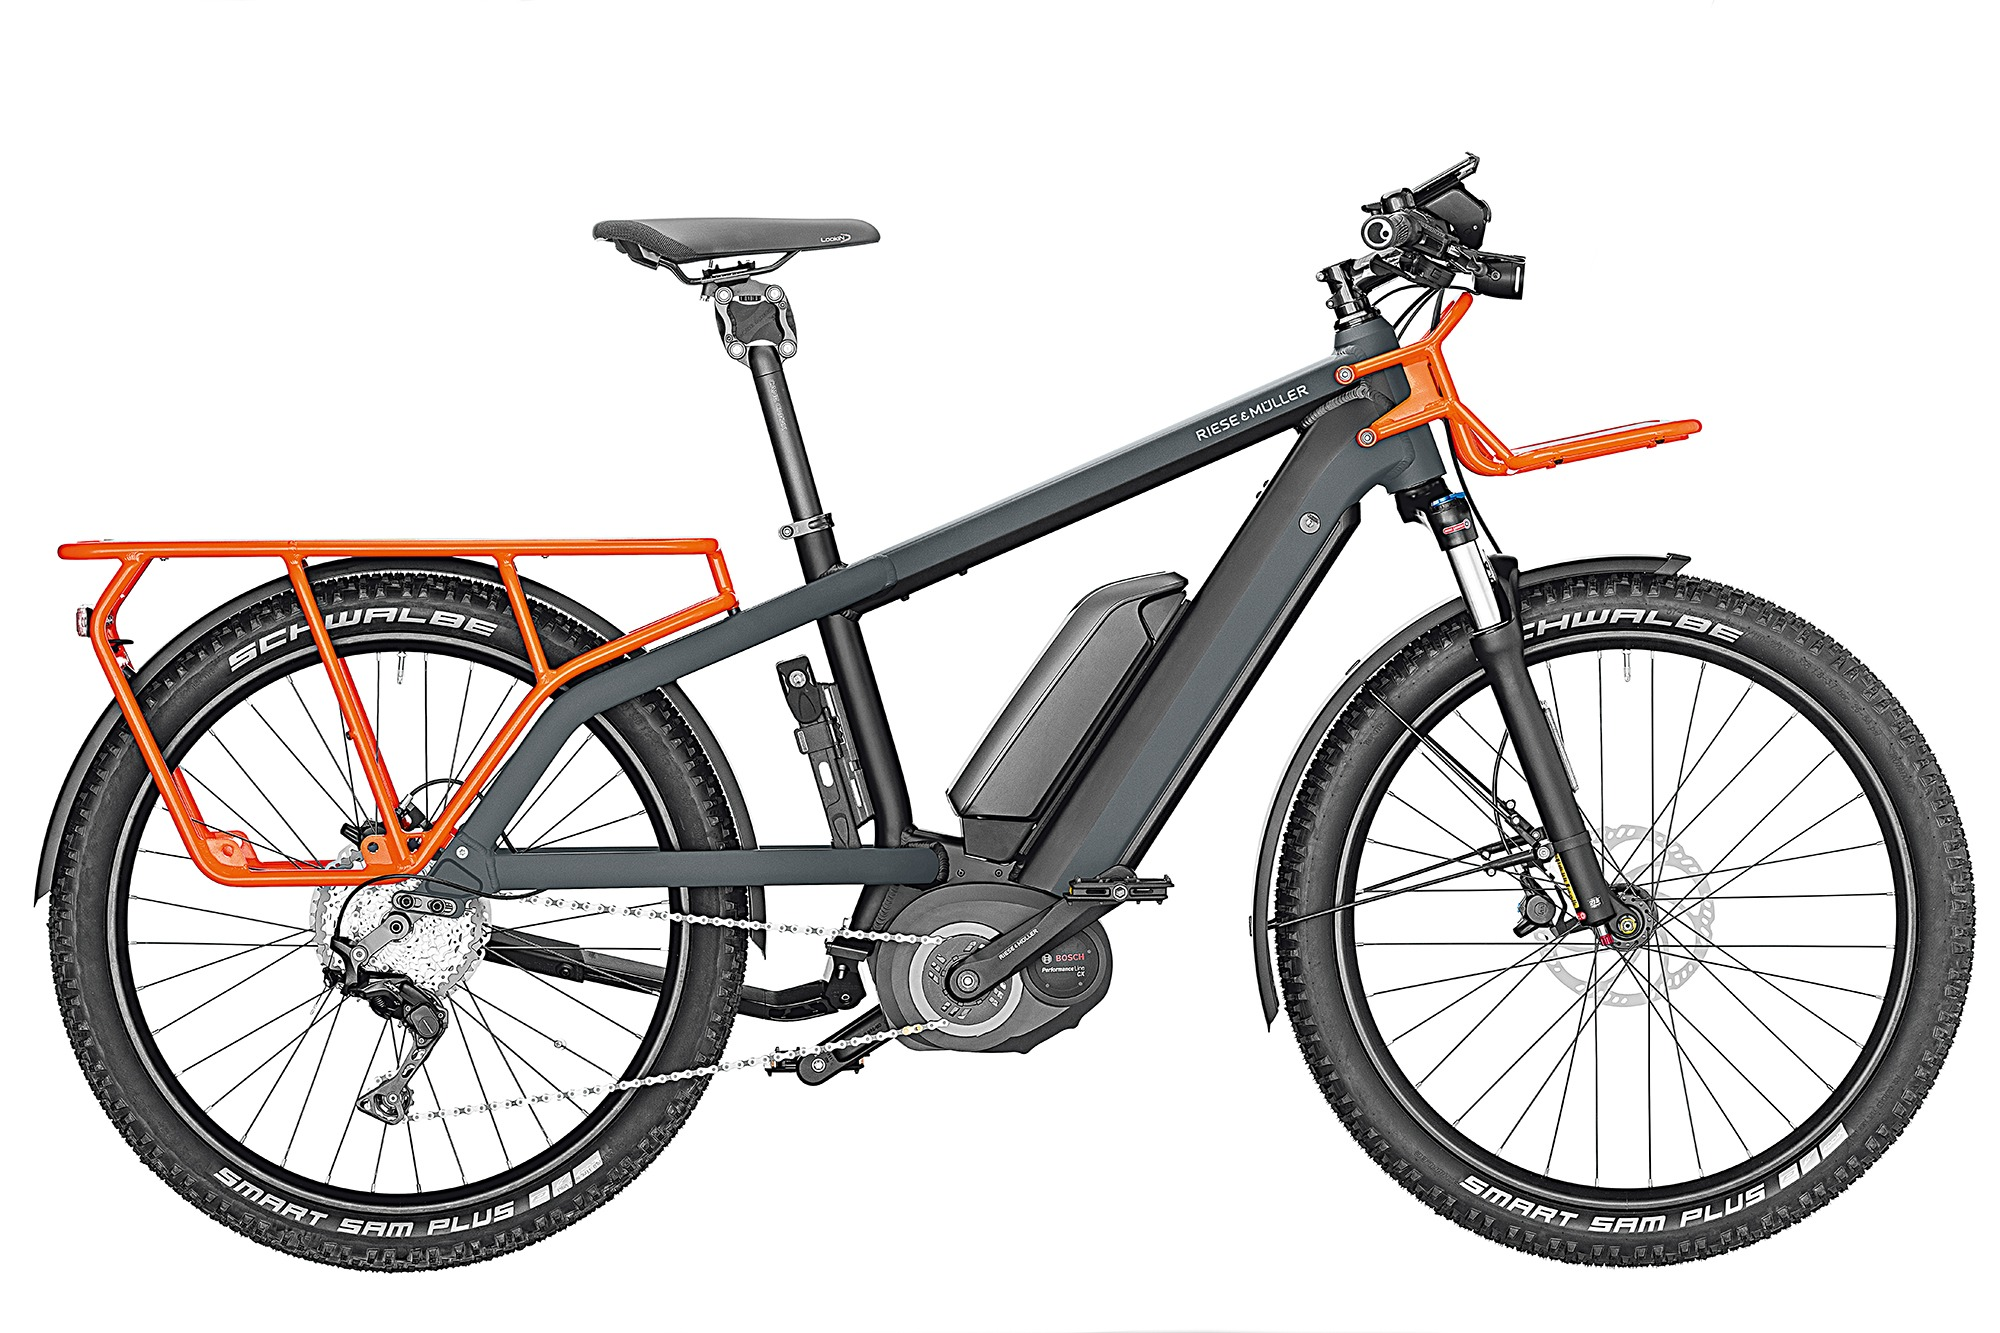 Multicharger GX Touring mit Dual Battery Ausstattung und Cobi Display